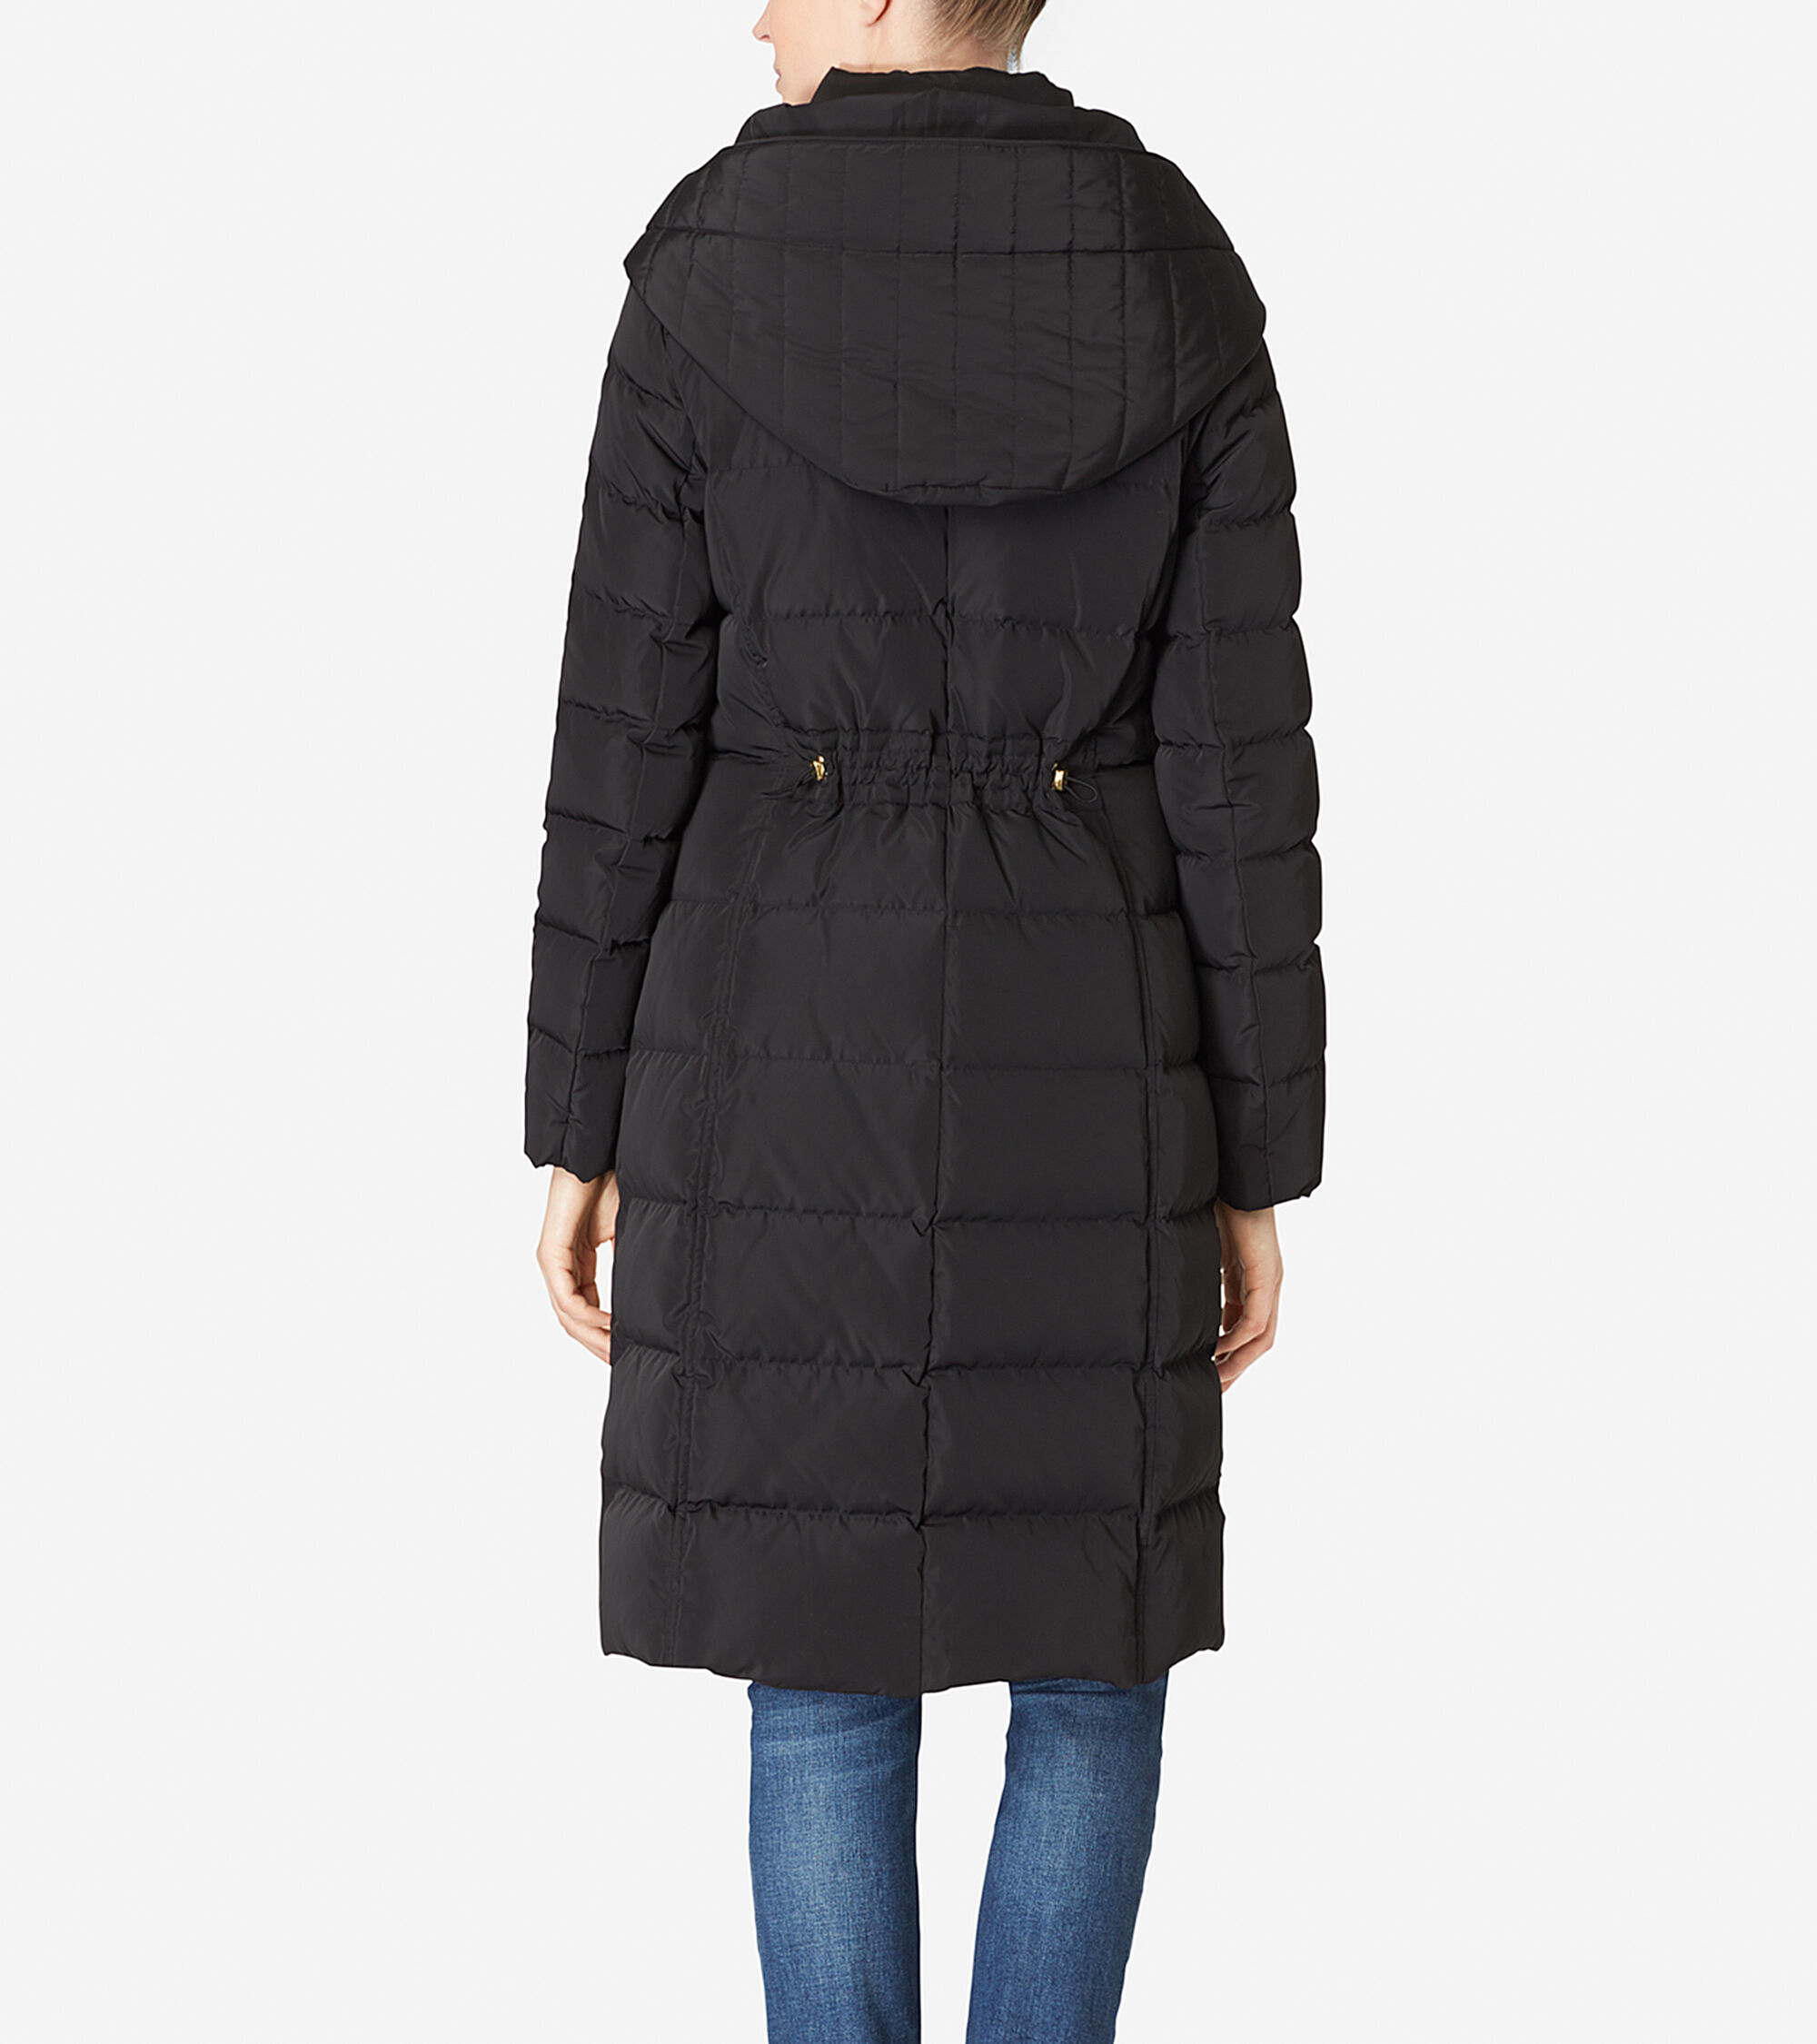 Women's Hooded Quilted Exposed Down Jacket in Black | Cole Haan : quilted down coats - Adamdwight.com